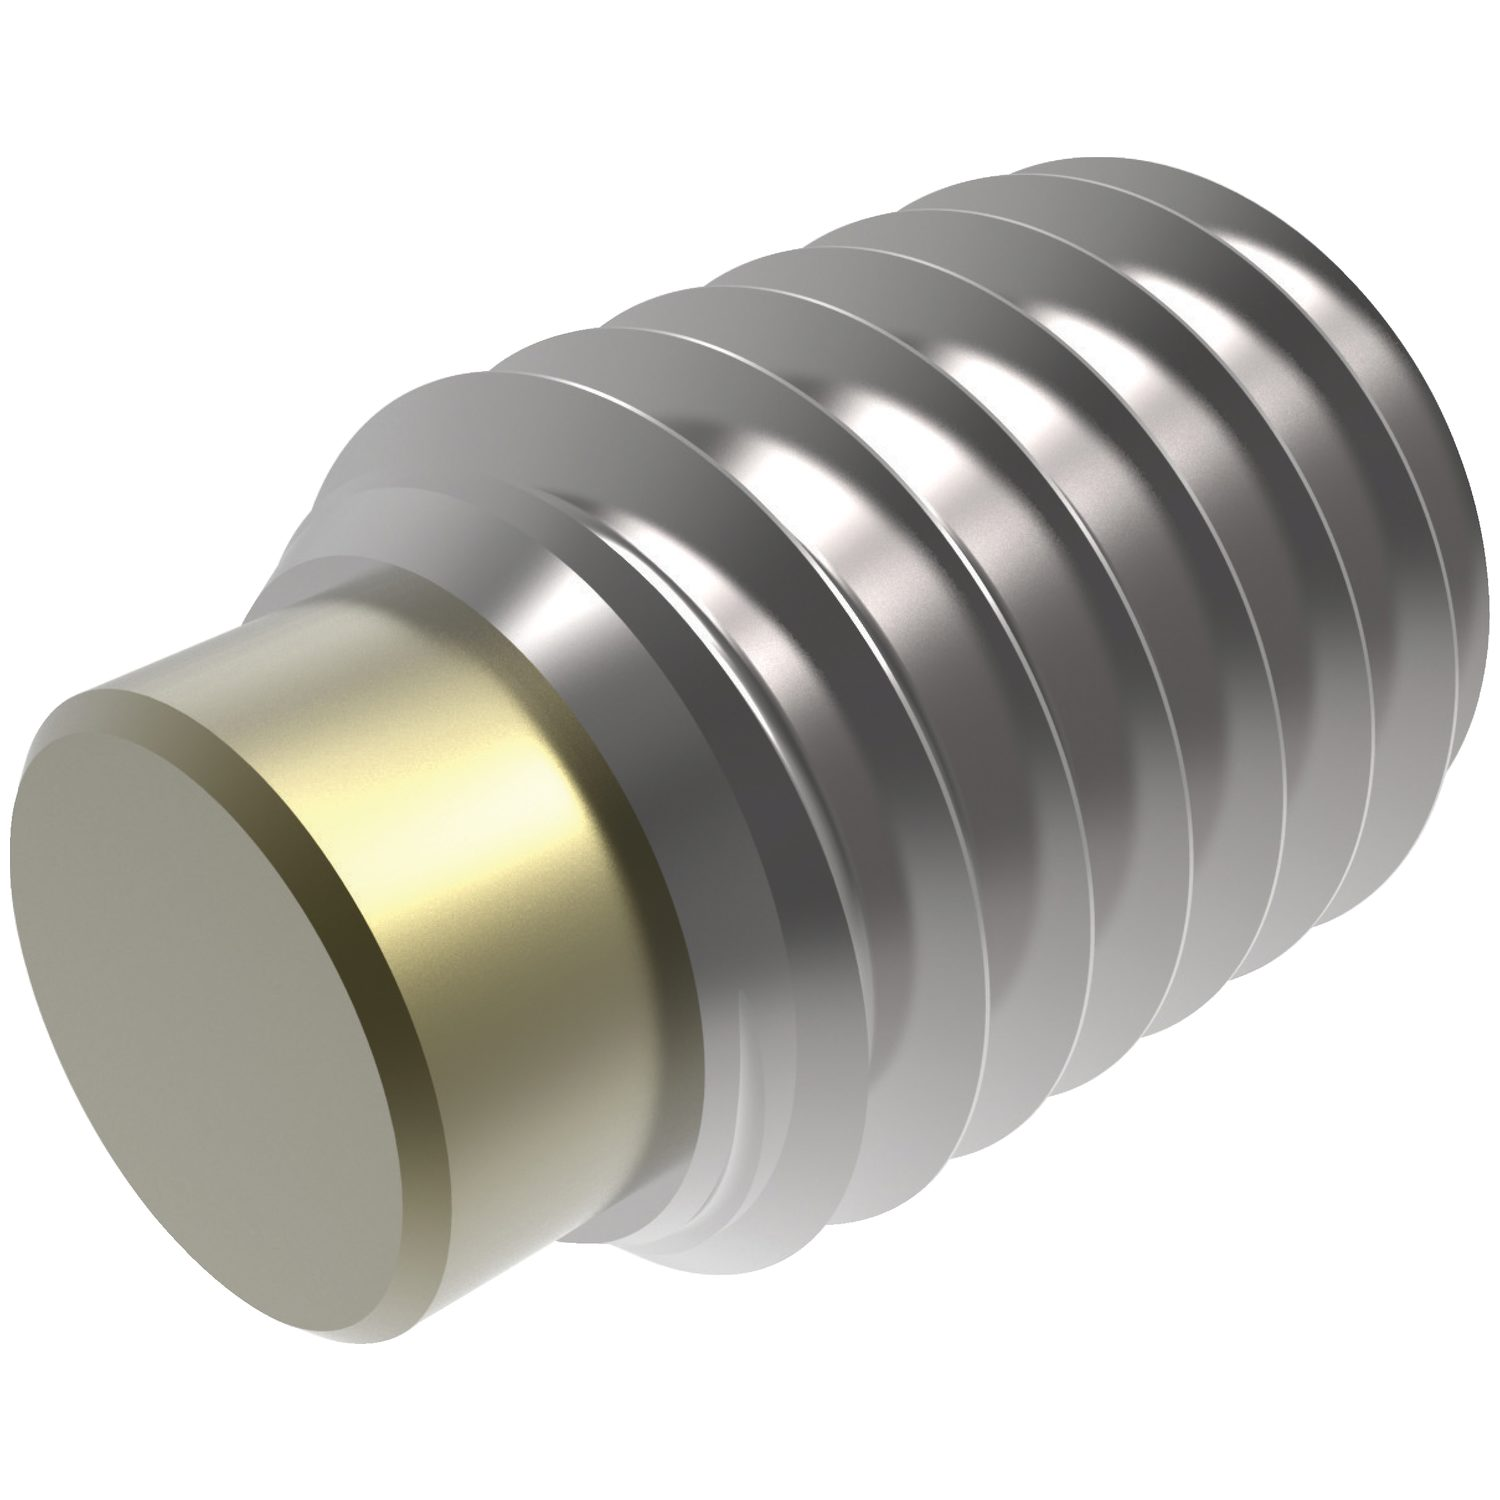 Tipped Screws